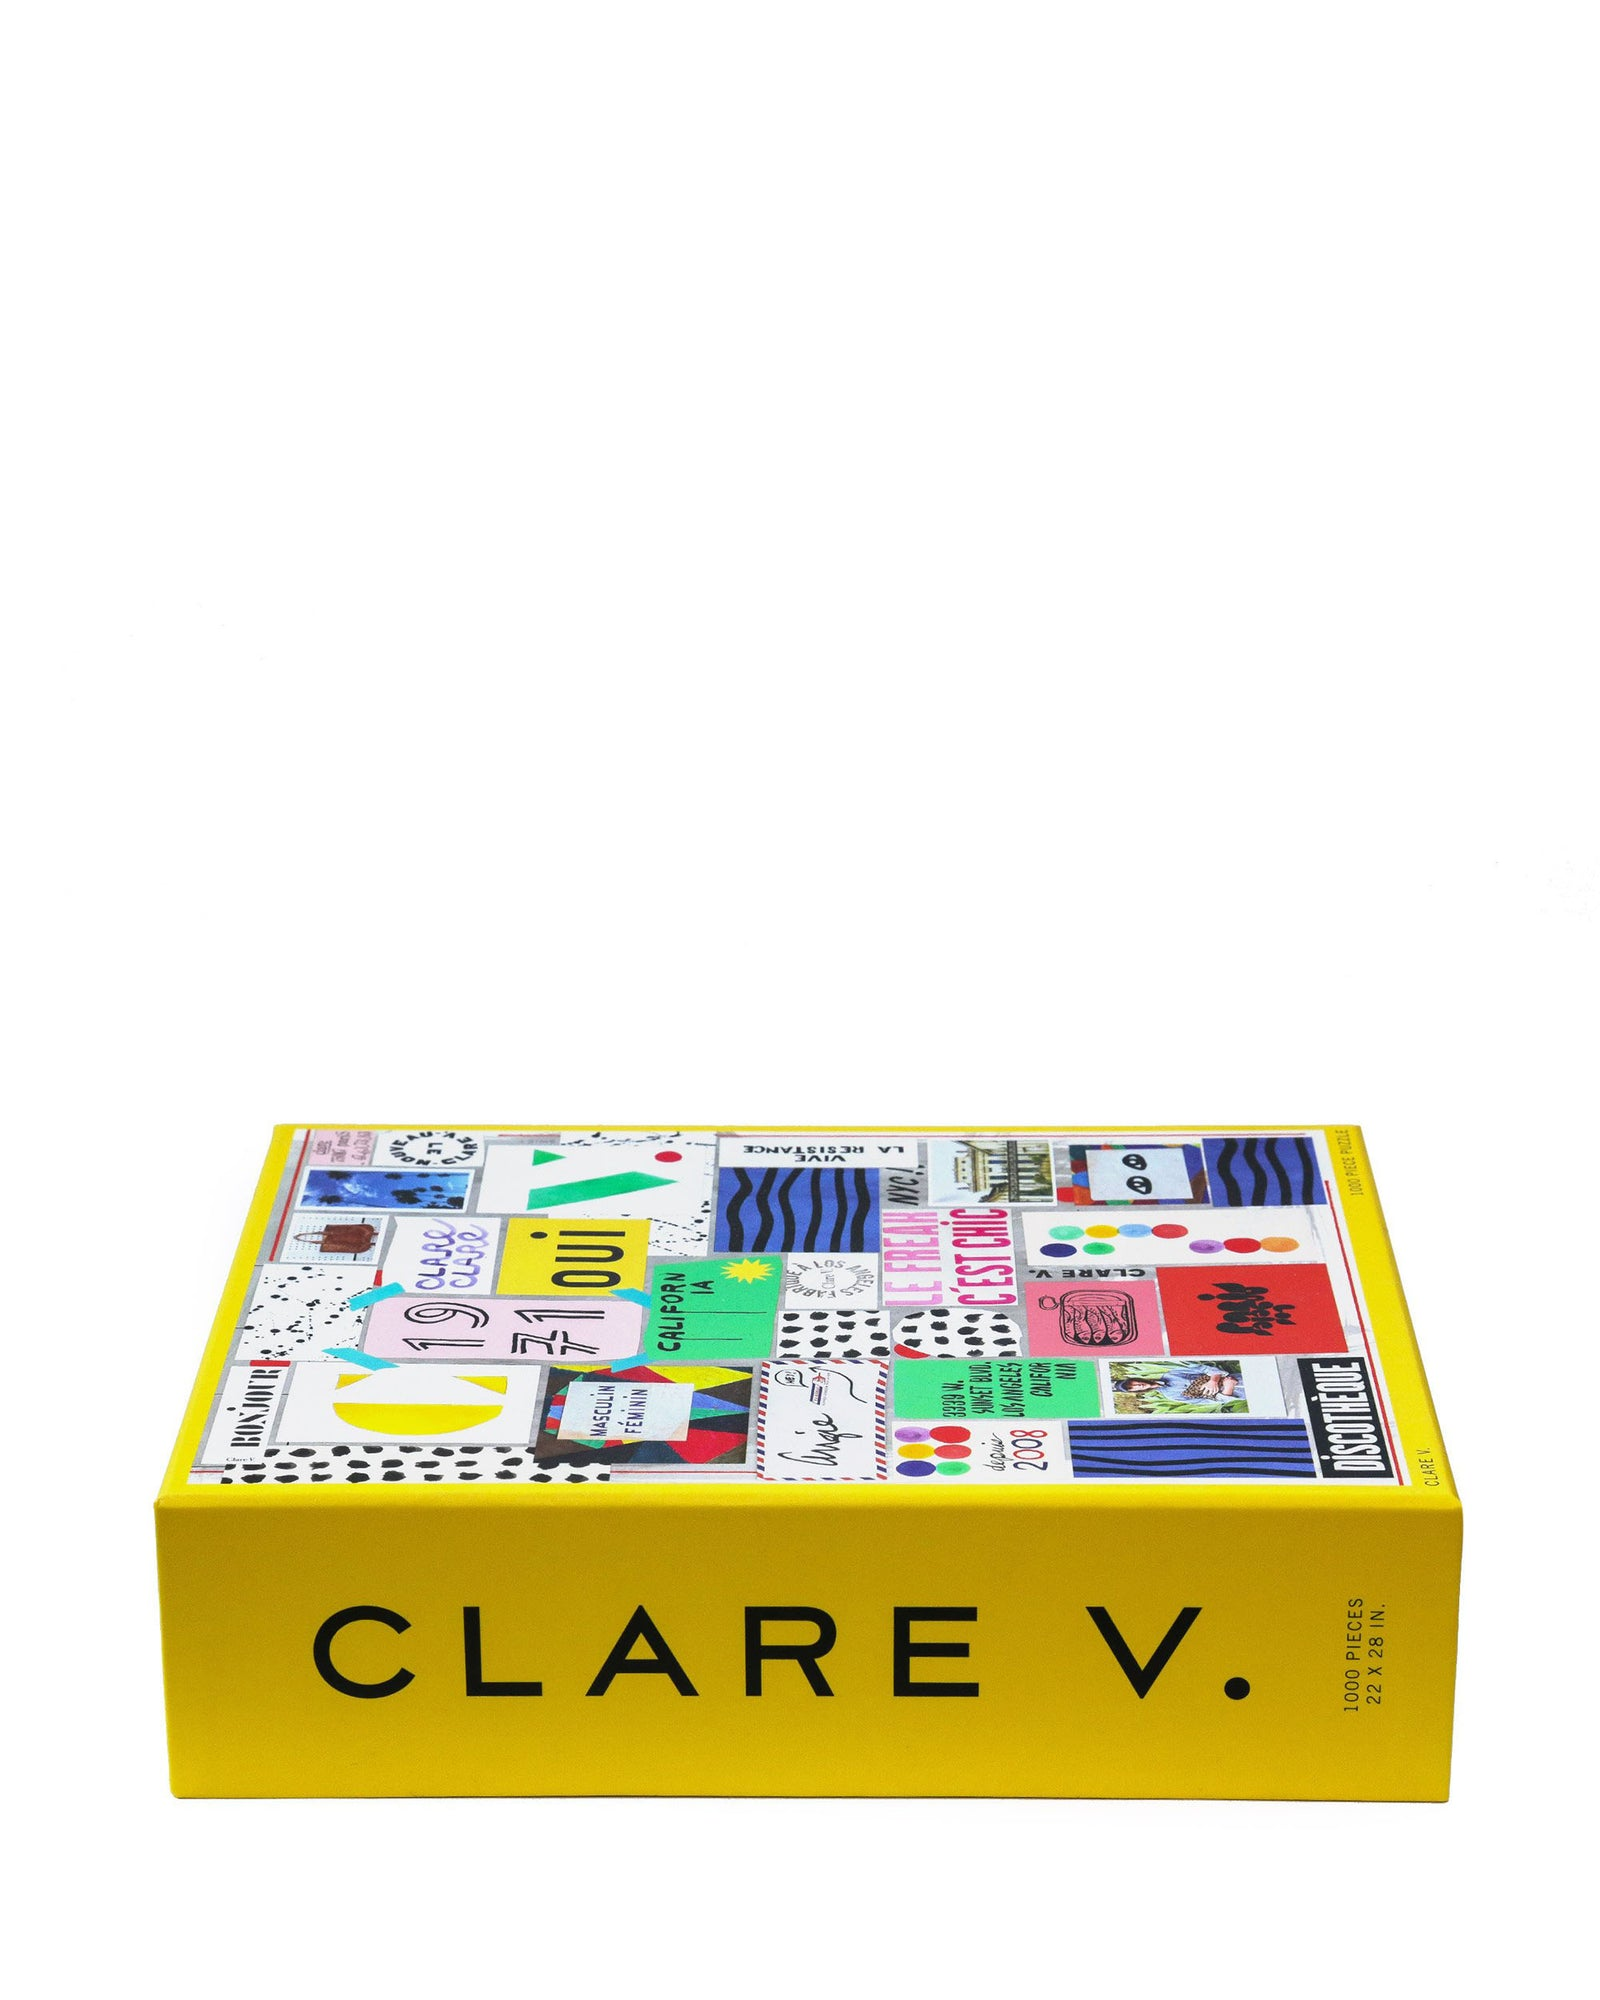 Clare V. Puzzle - Side of Box